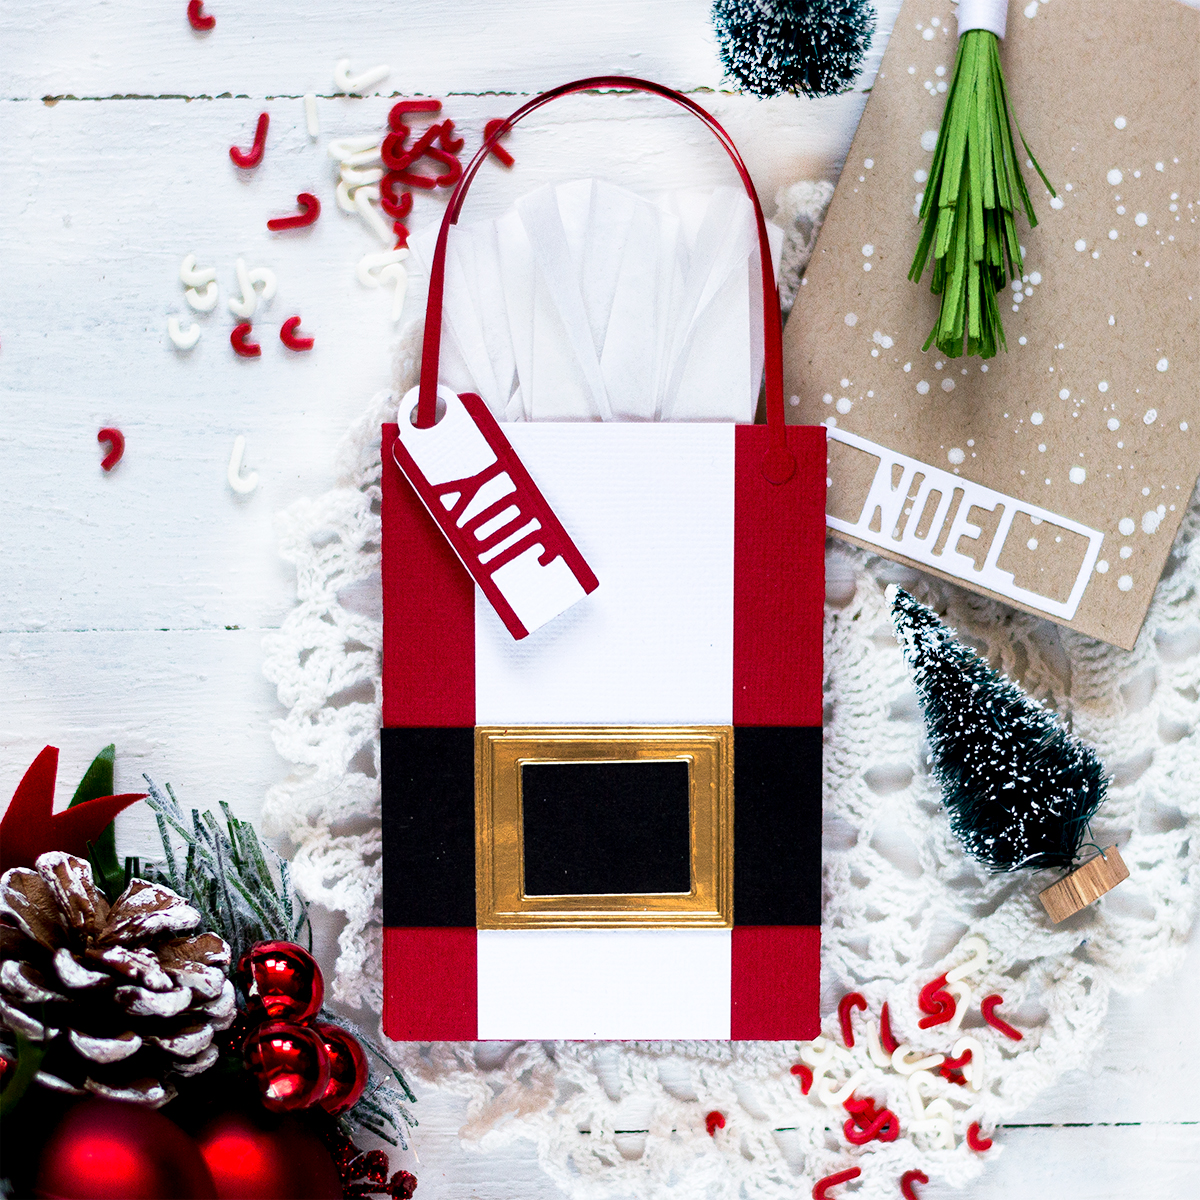 Santa's Suit Bag Christmas Gift Card Holder. Card by Svitlana Shayevich